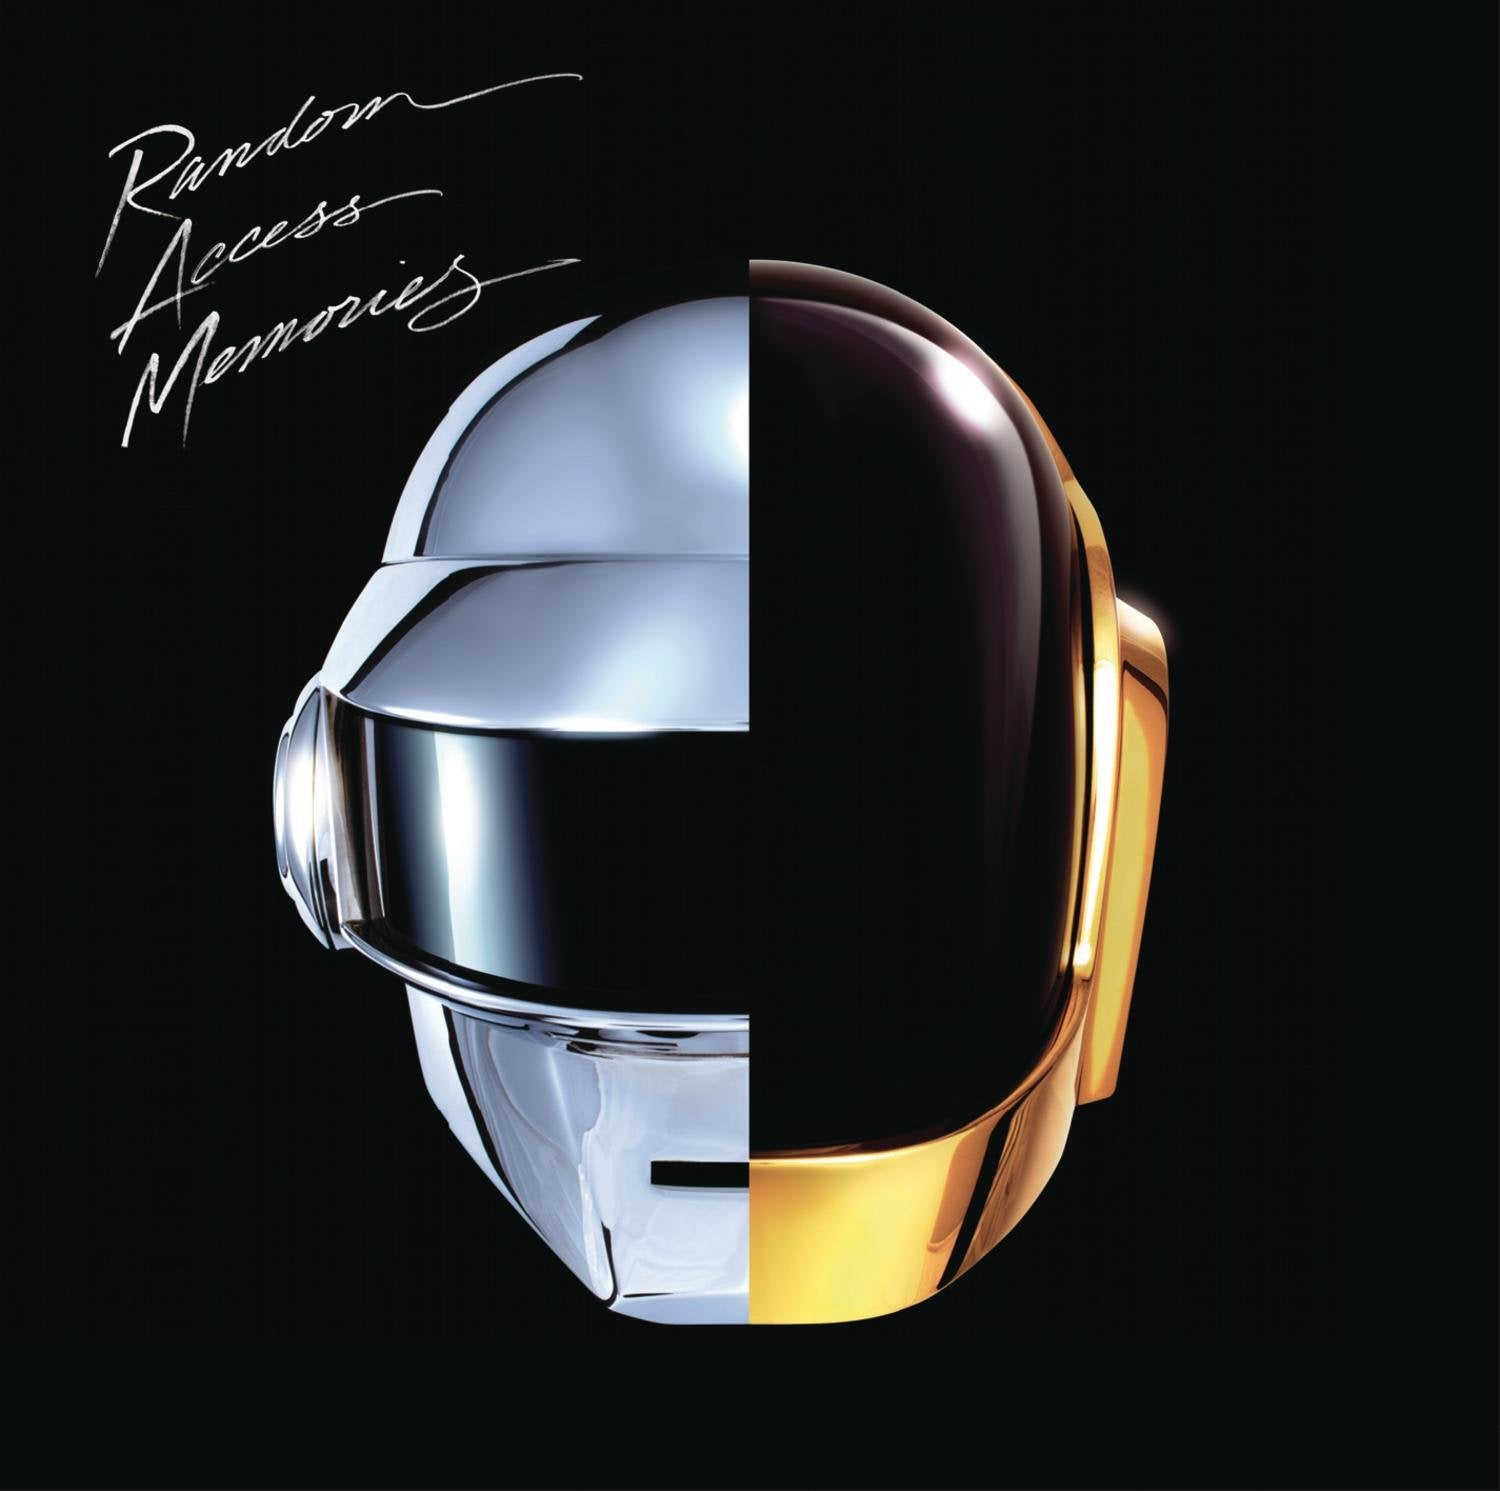 Random Access Memories -  Daft Punk - Gears For Ears